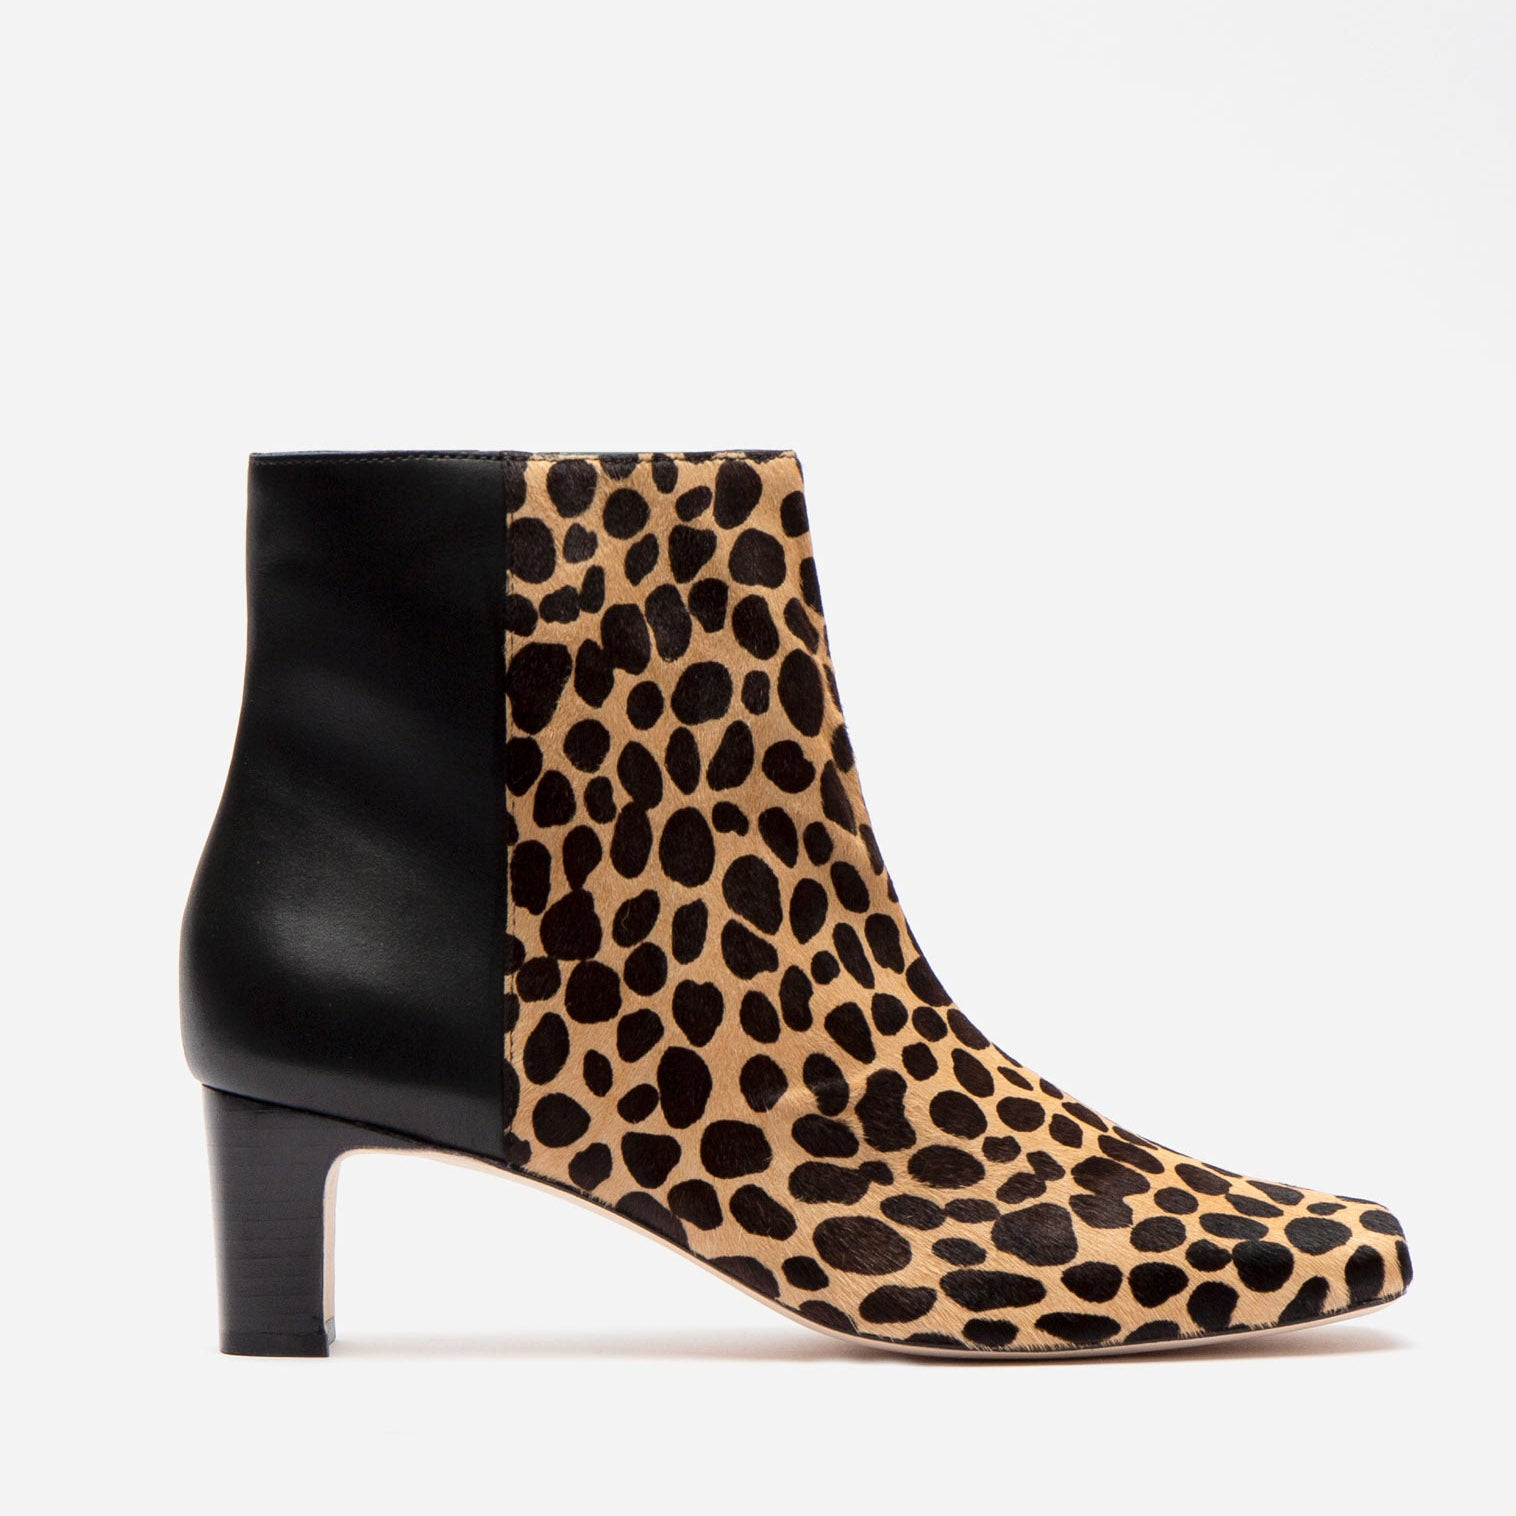 Eleanor Boot Printed Haircalf Cheetah - Frances Valentine